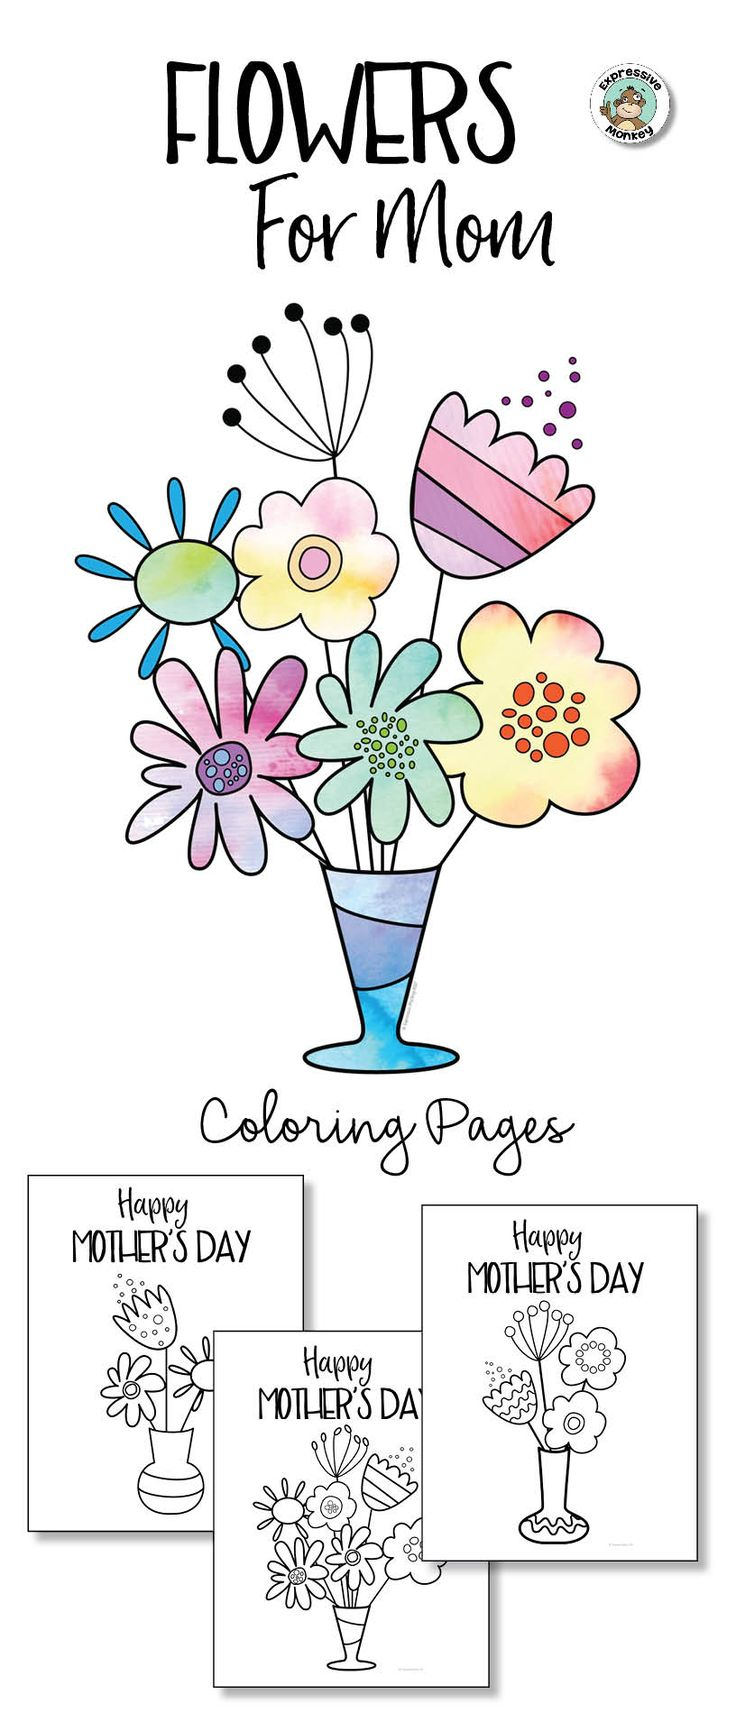 Mothers day coloring sheets for sunday school - Flower Coloring Pages For The Front Of A Mother S Day